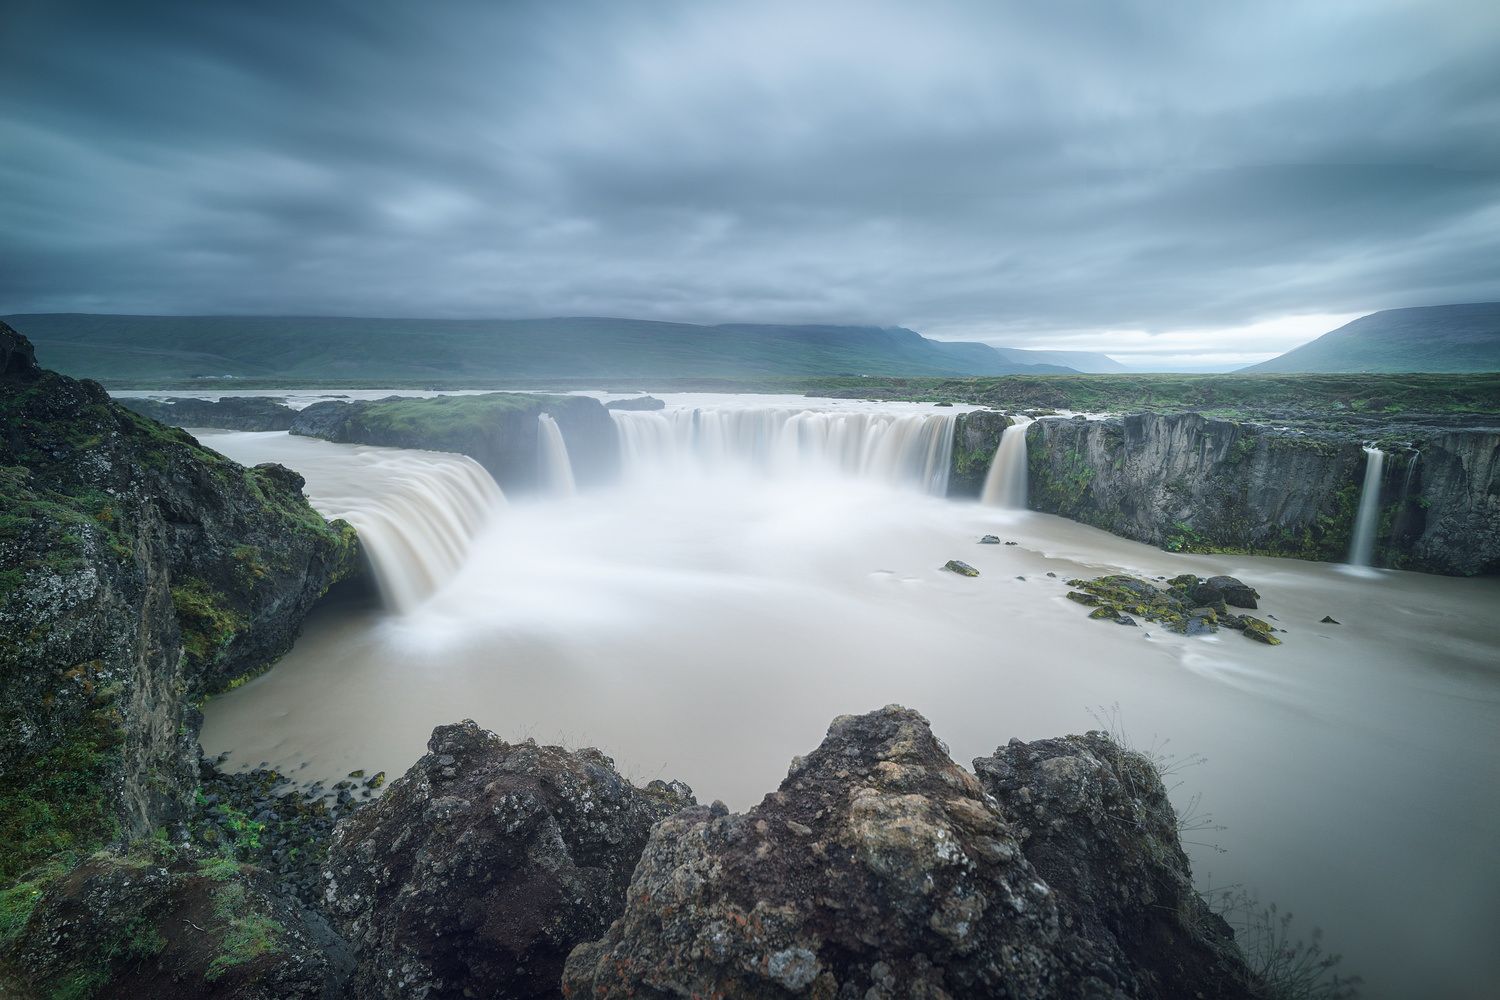 The waterfall of the gods by DaniGviews /Daniel